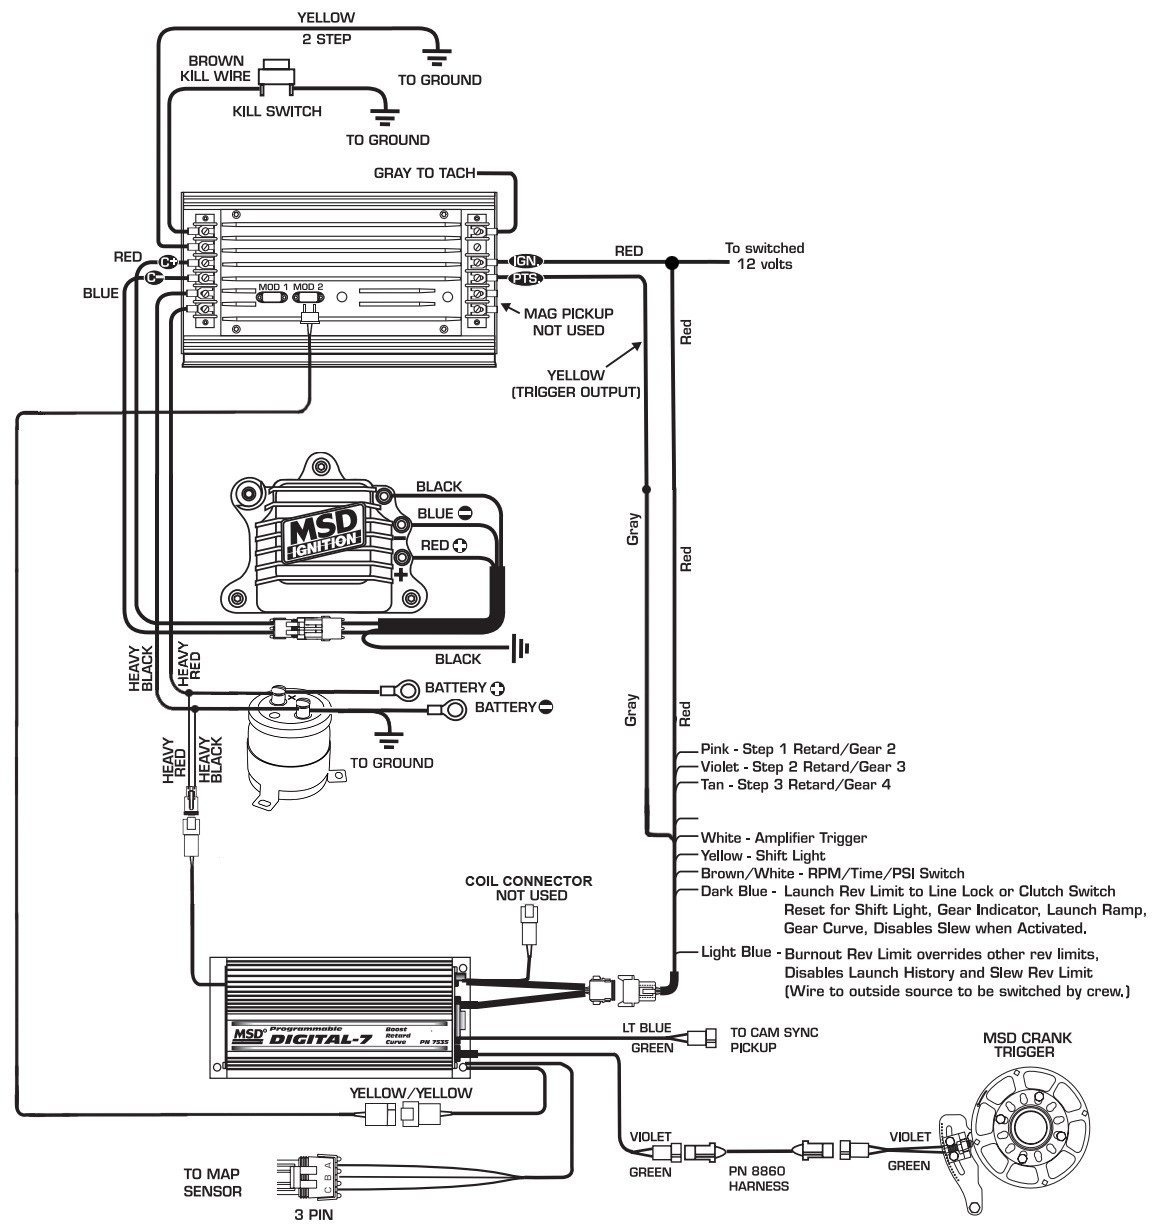 msd 6al 2 wiring diagram Collection-Msd Digital 6al Wiring Diagram Awesome Wire 7 17-l